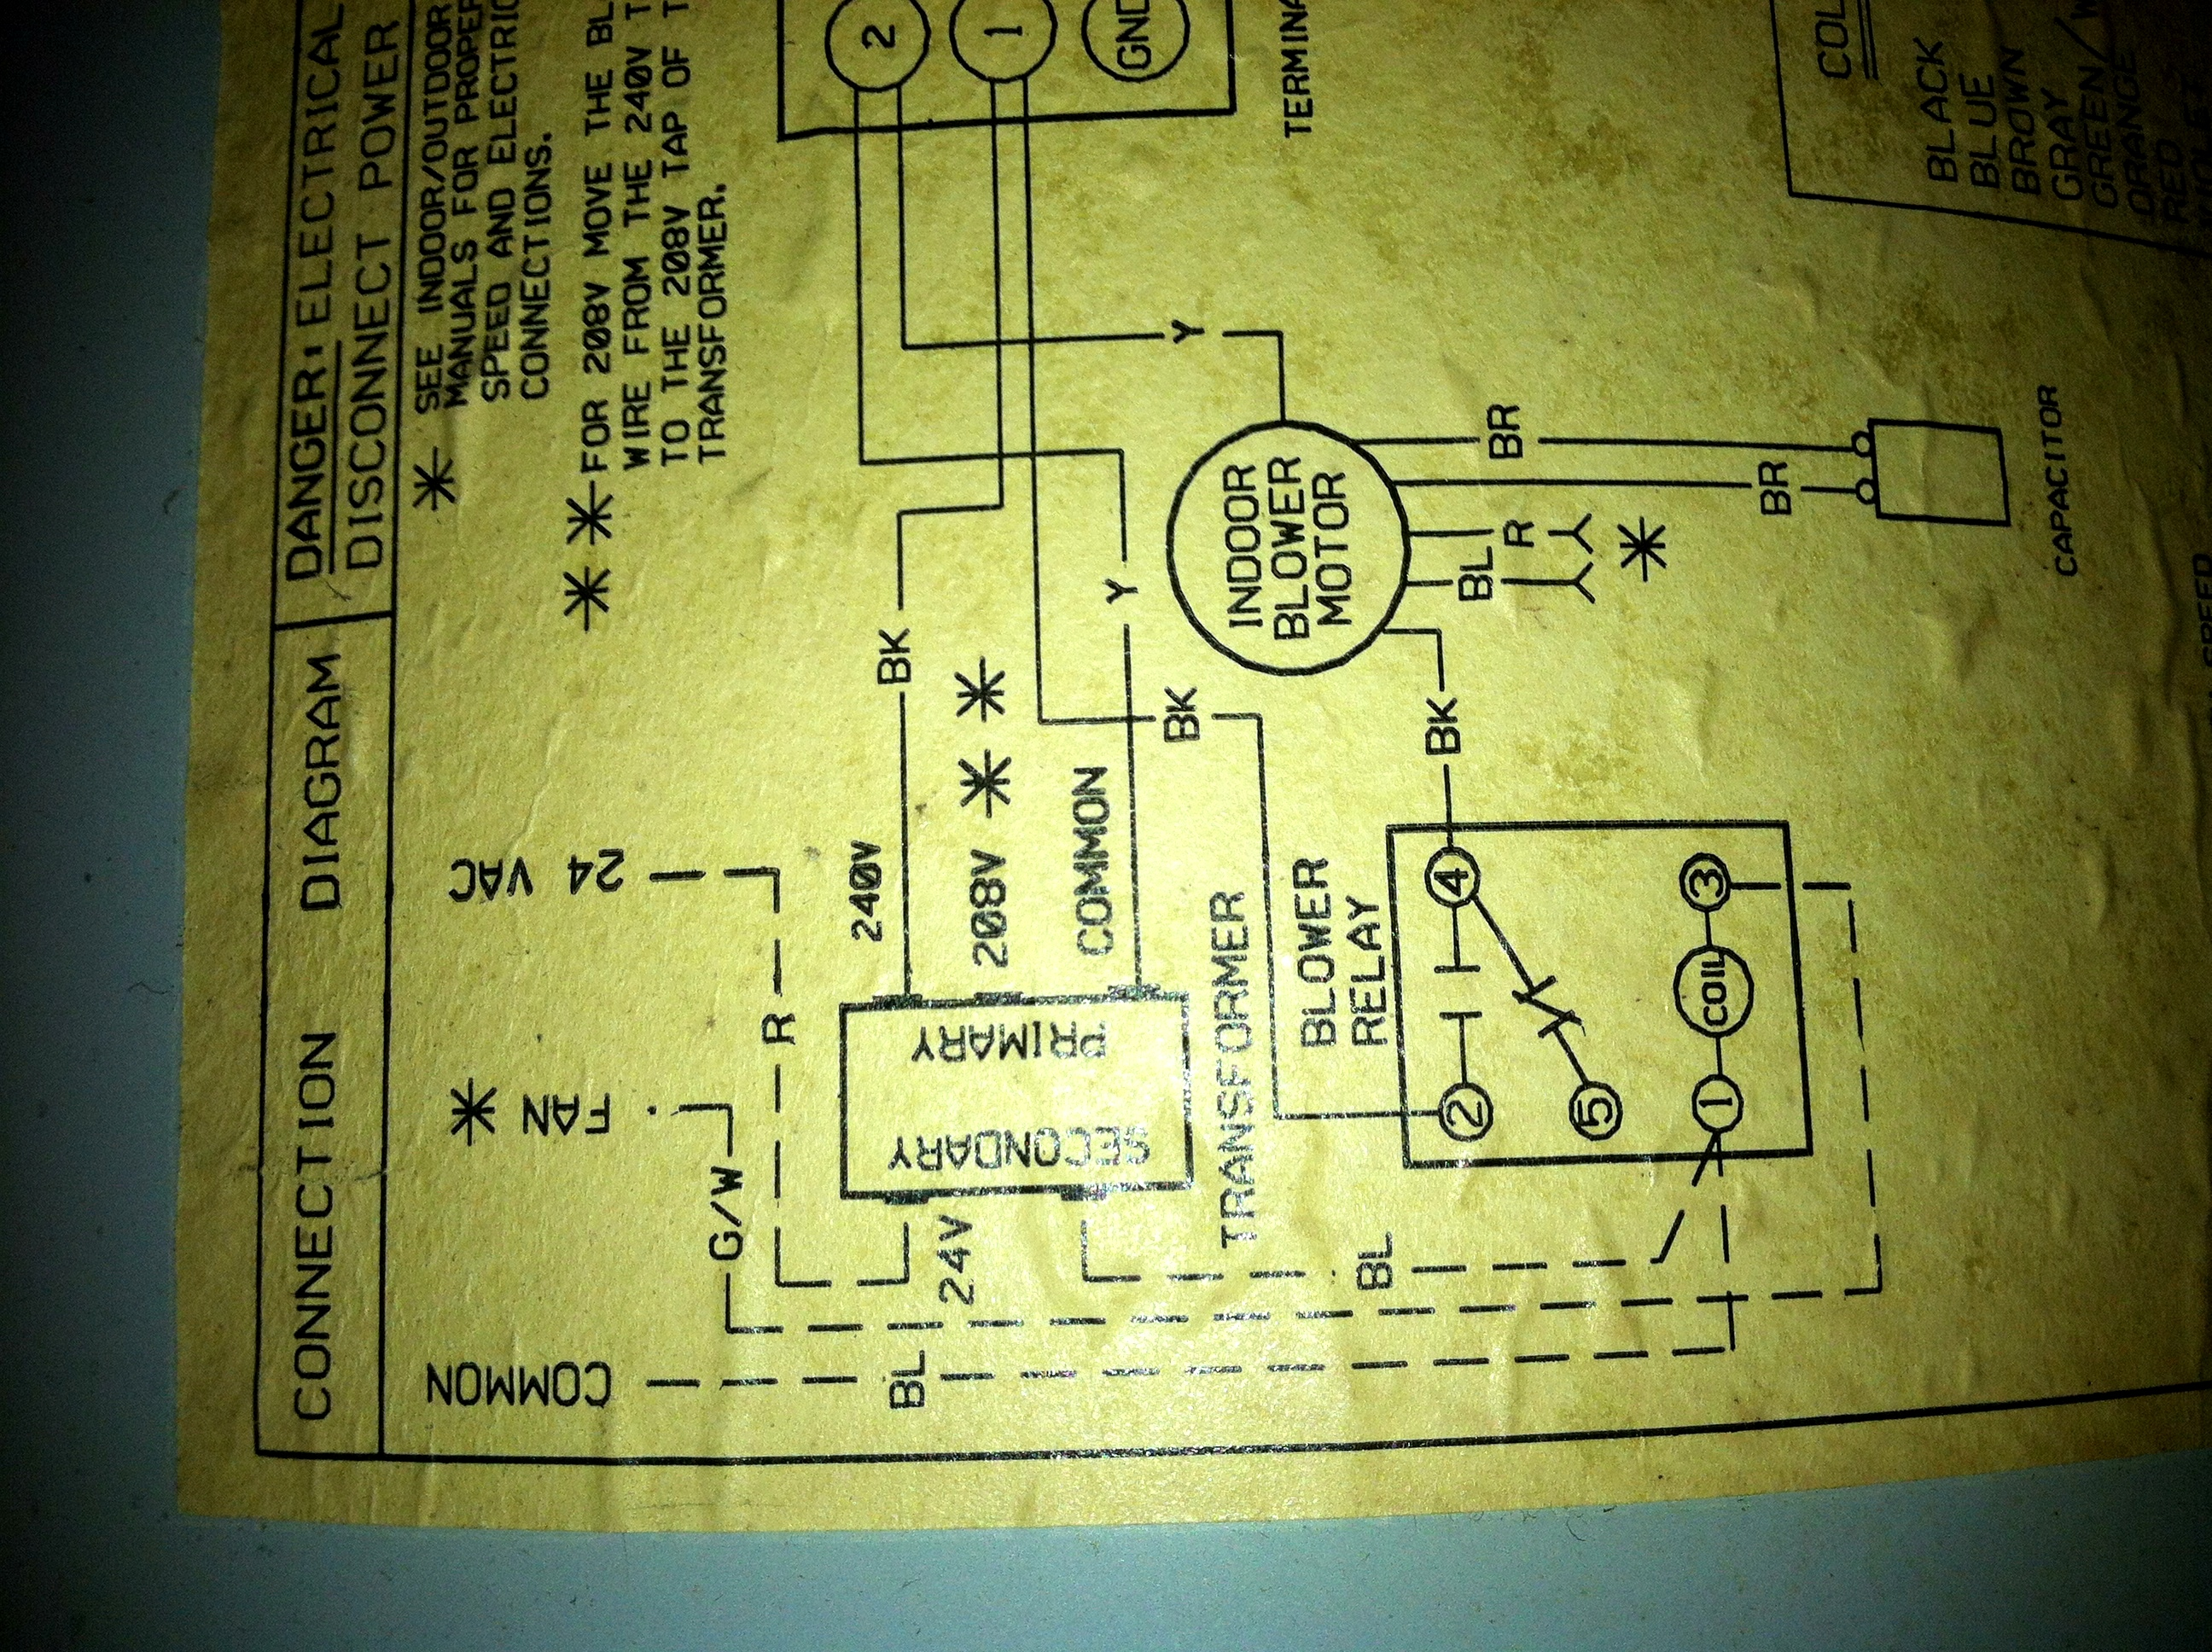 Tempstar Heat Pump Honeywell Thermostat Wiring Colors Carrier Schematic Wi Fi Diagram Get 2 Stage